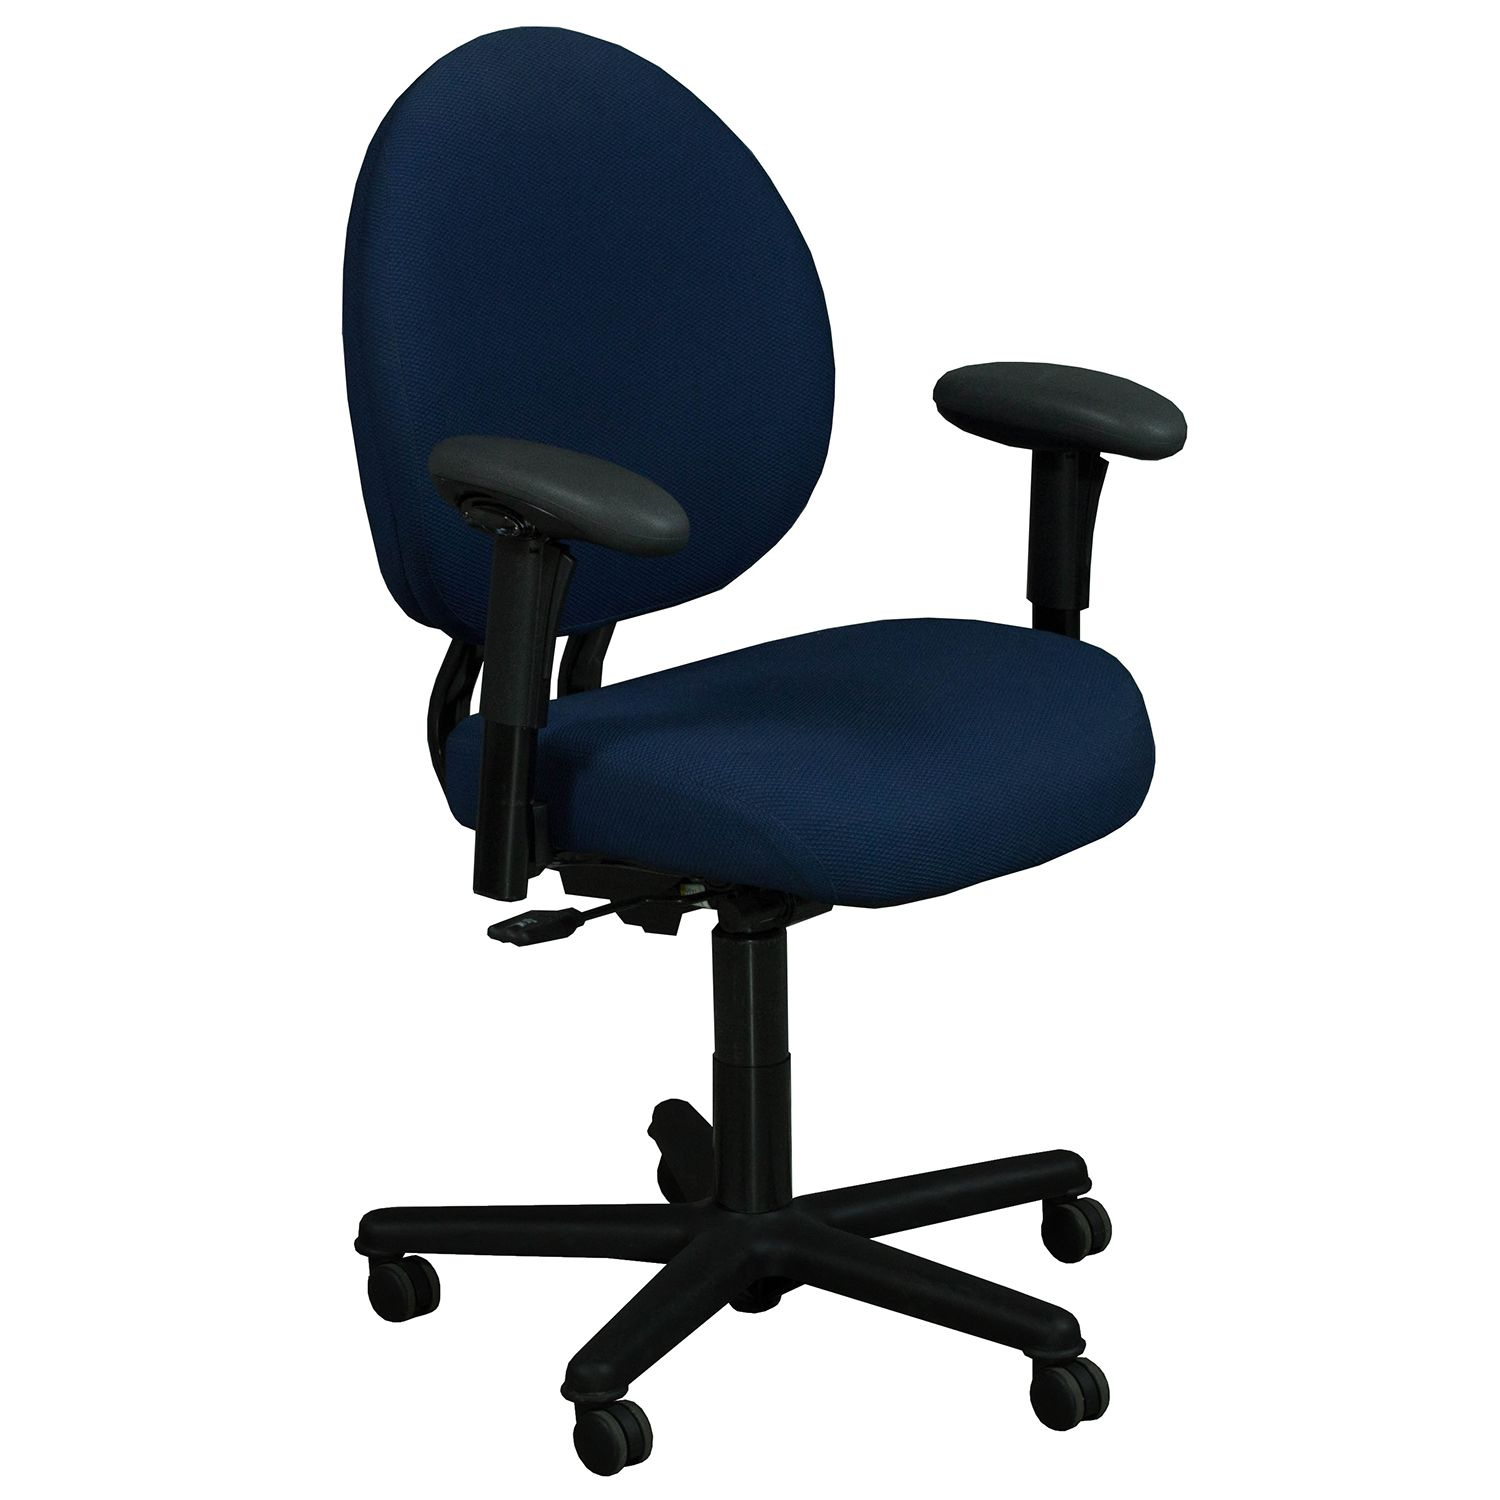 Steelcase Criterion Chair Steelcase Criterion Plus Used Big Man Task Chair Blue Style In